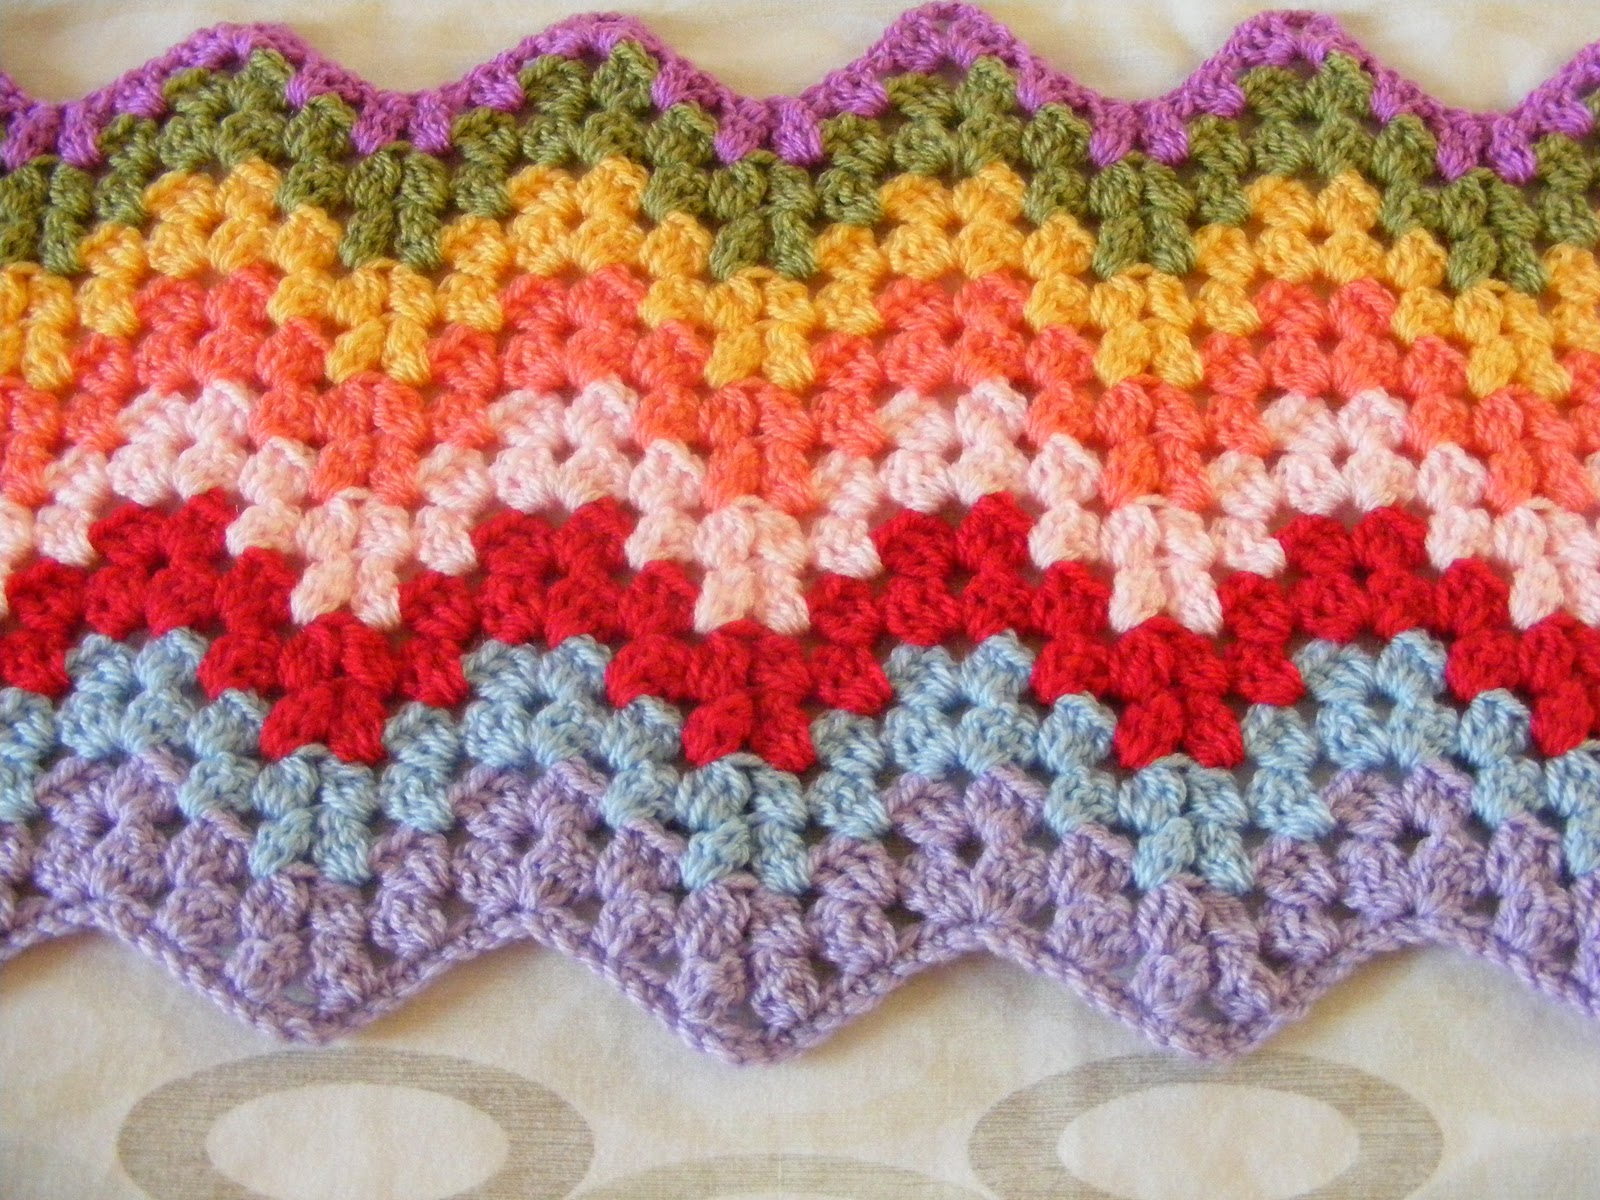 Crochet Stitches Granny Ripple : Next it was time to take the plunge, and do it for real.